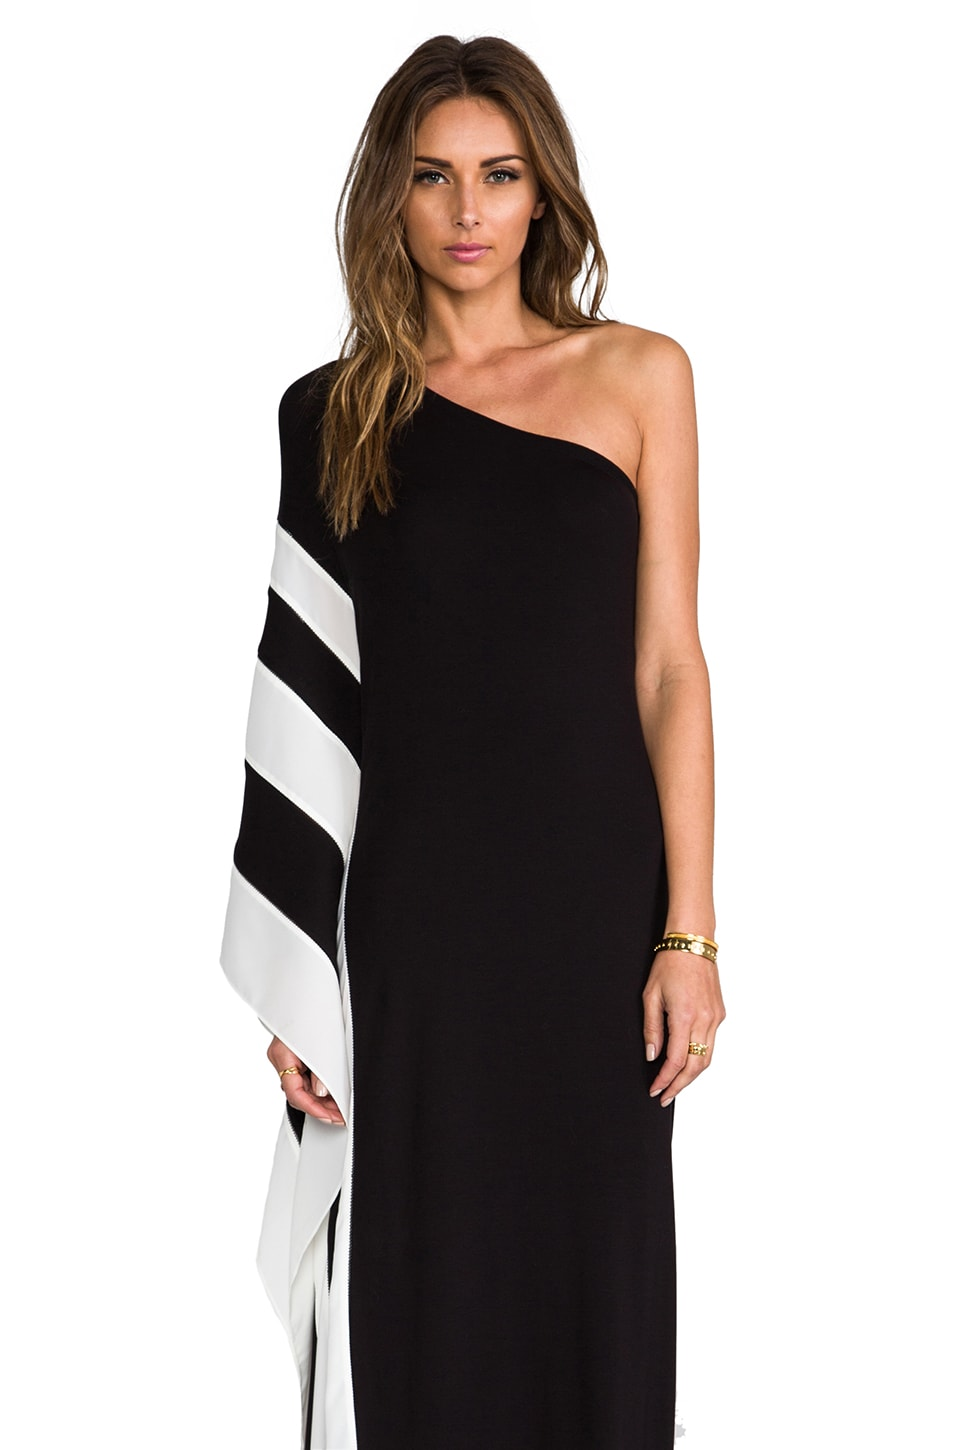 Rachel Zoe Azur One Shoulder Maxi Dress in Black & White